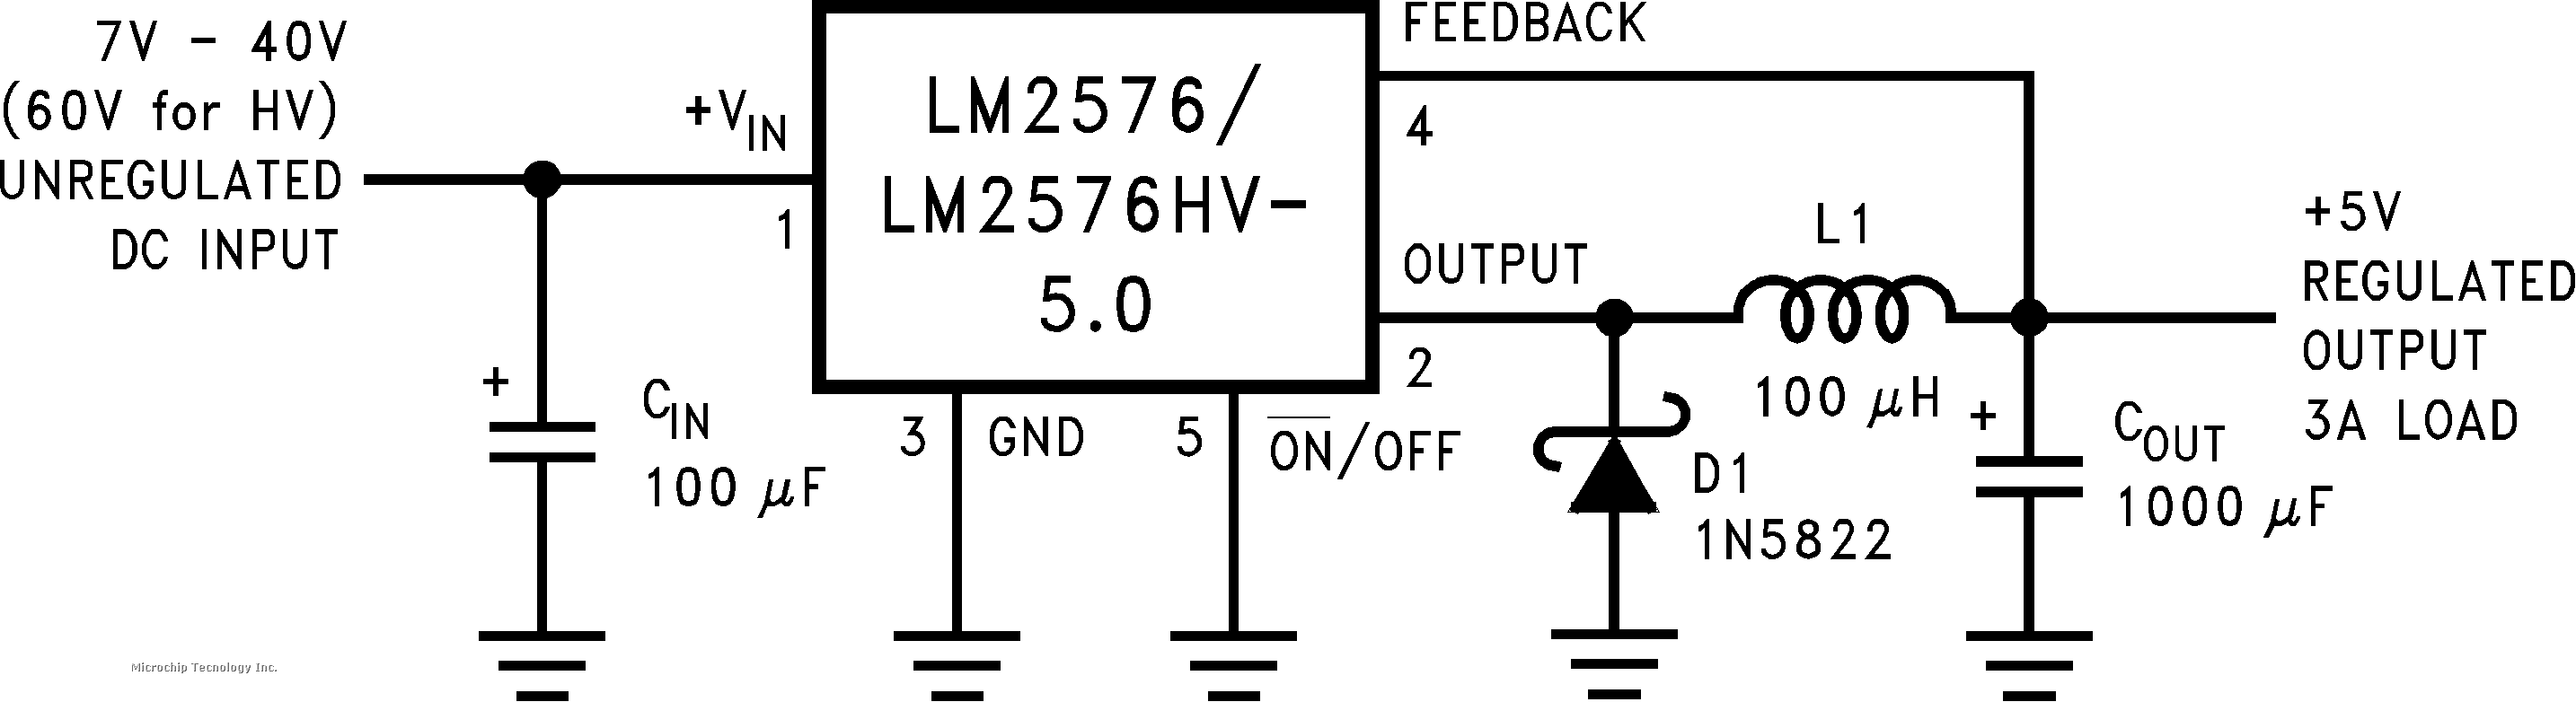 High Voltage Problem Pic 16f877a Microchip Adjustable Power Supply Using 7805 Circuit Diagram Attached Images